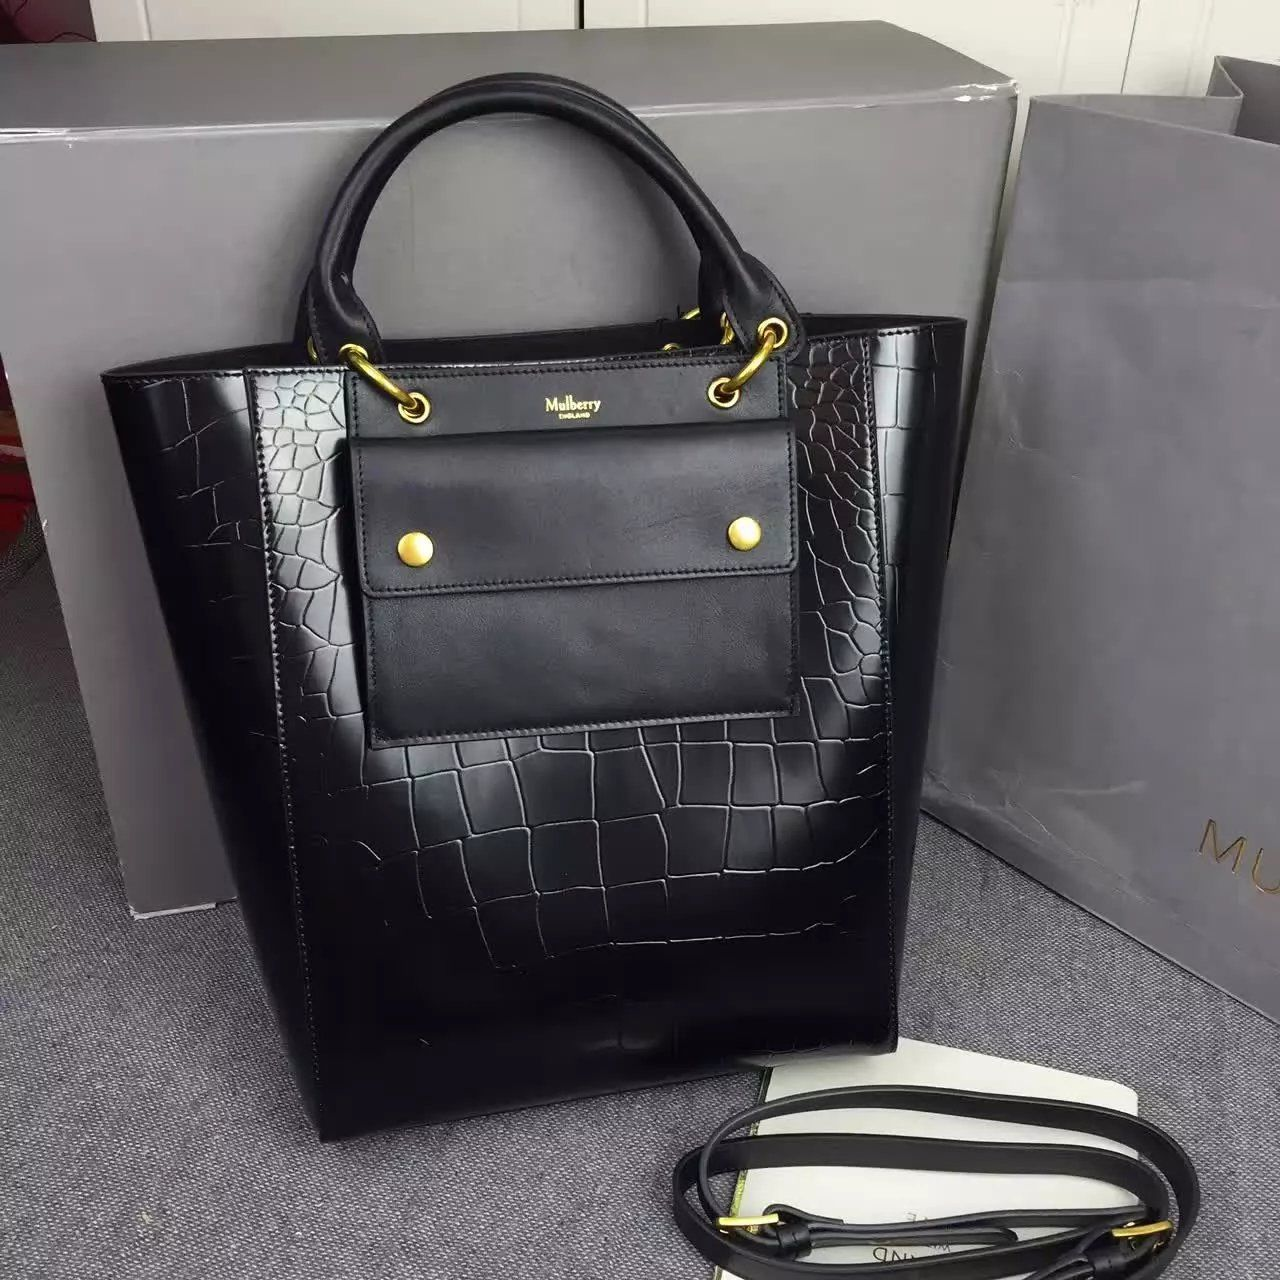 ef7c86c5a9fb New Edition!2016 Mulberry Handbags Collection Outlet UK-Mulberry Maple  Black Polished Embossed Croc